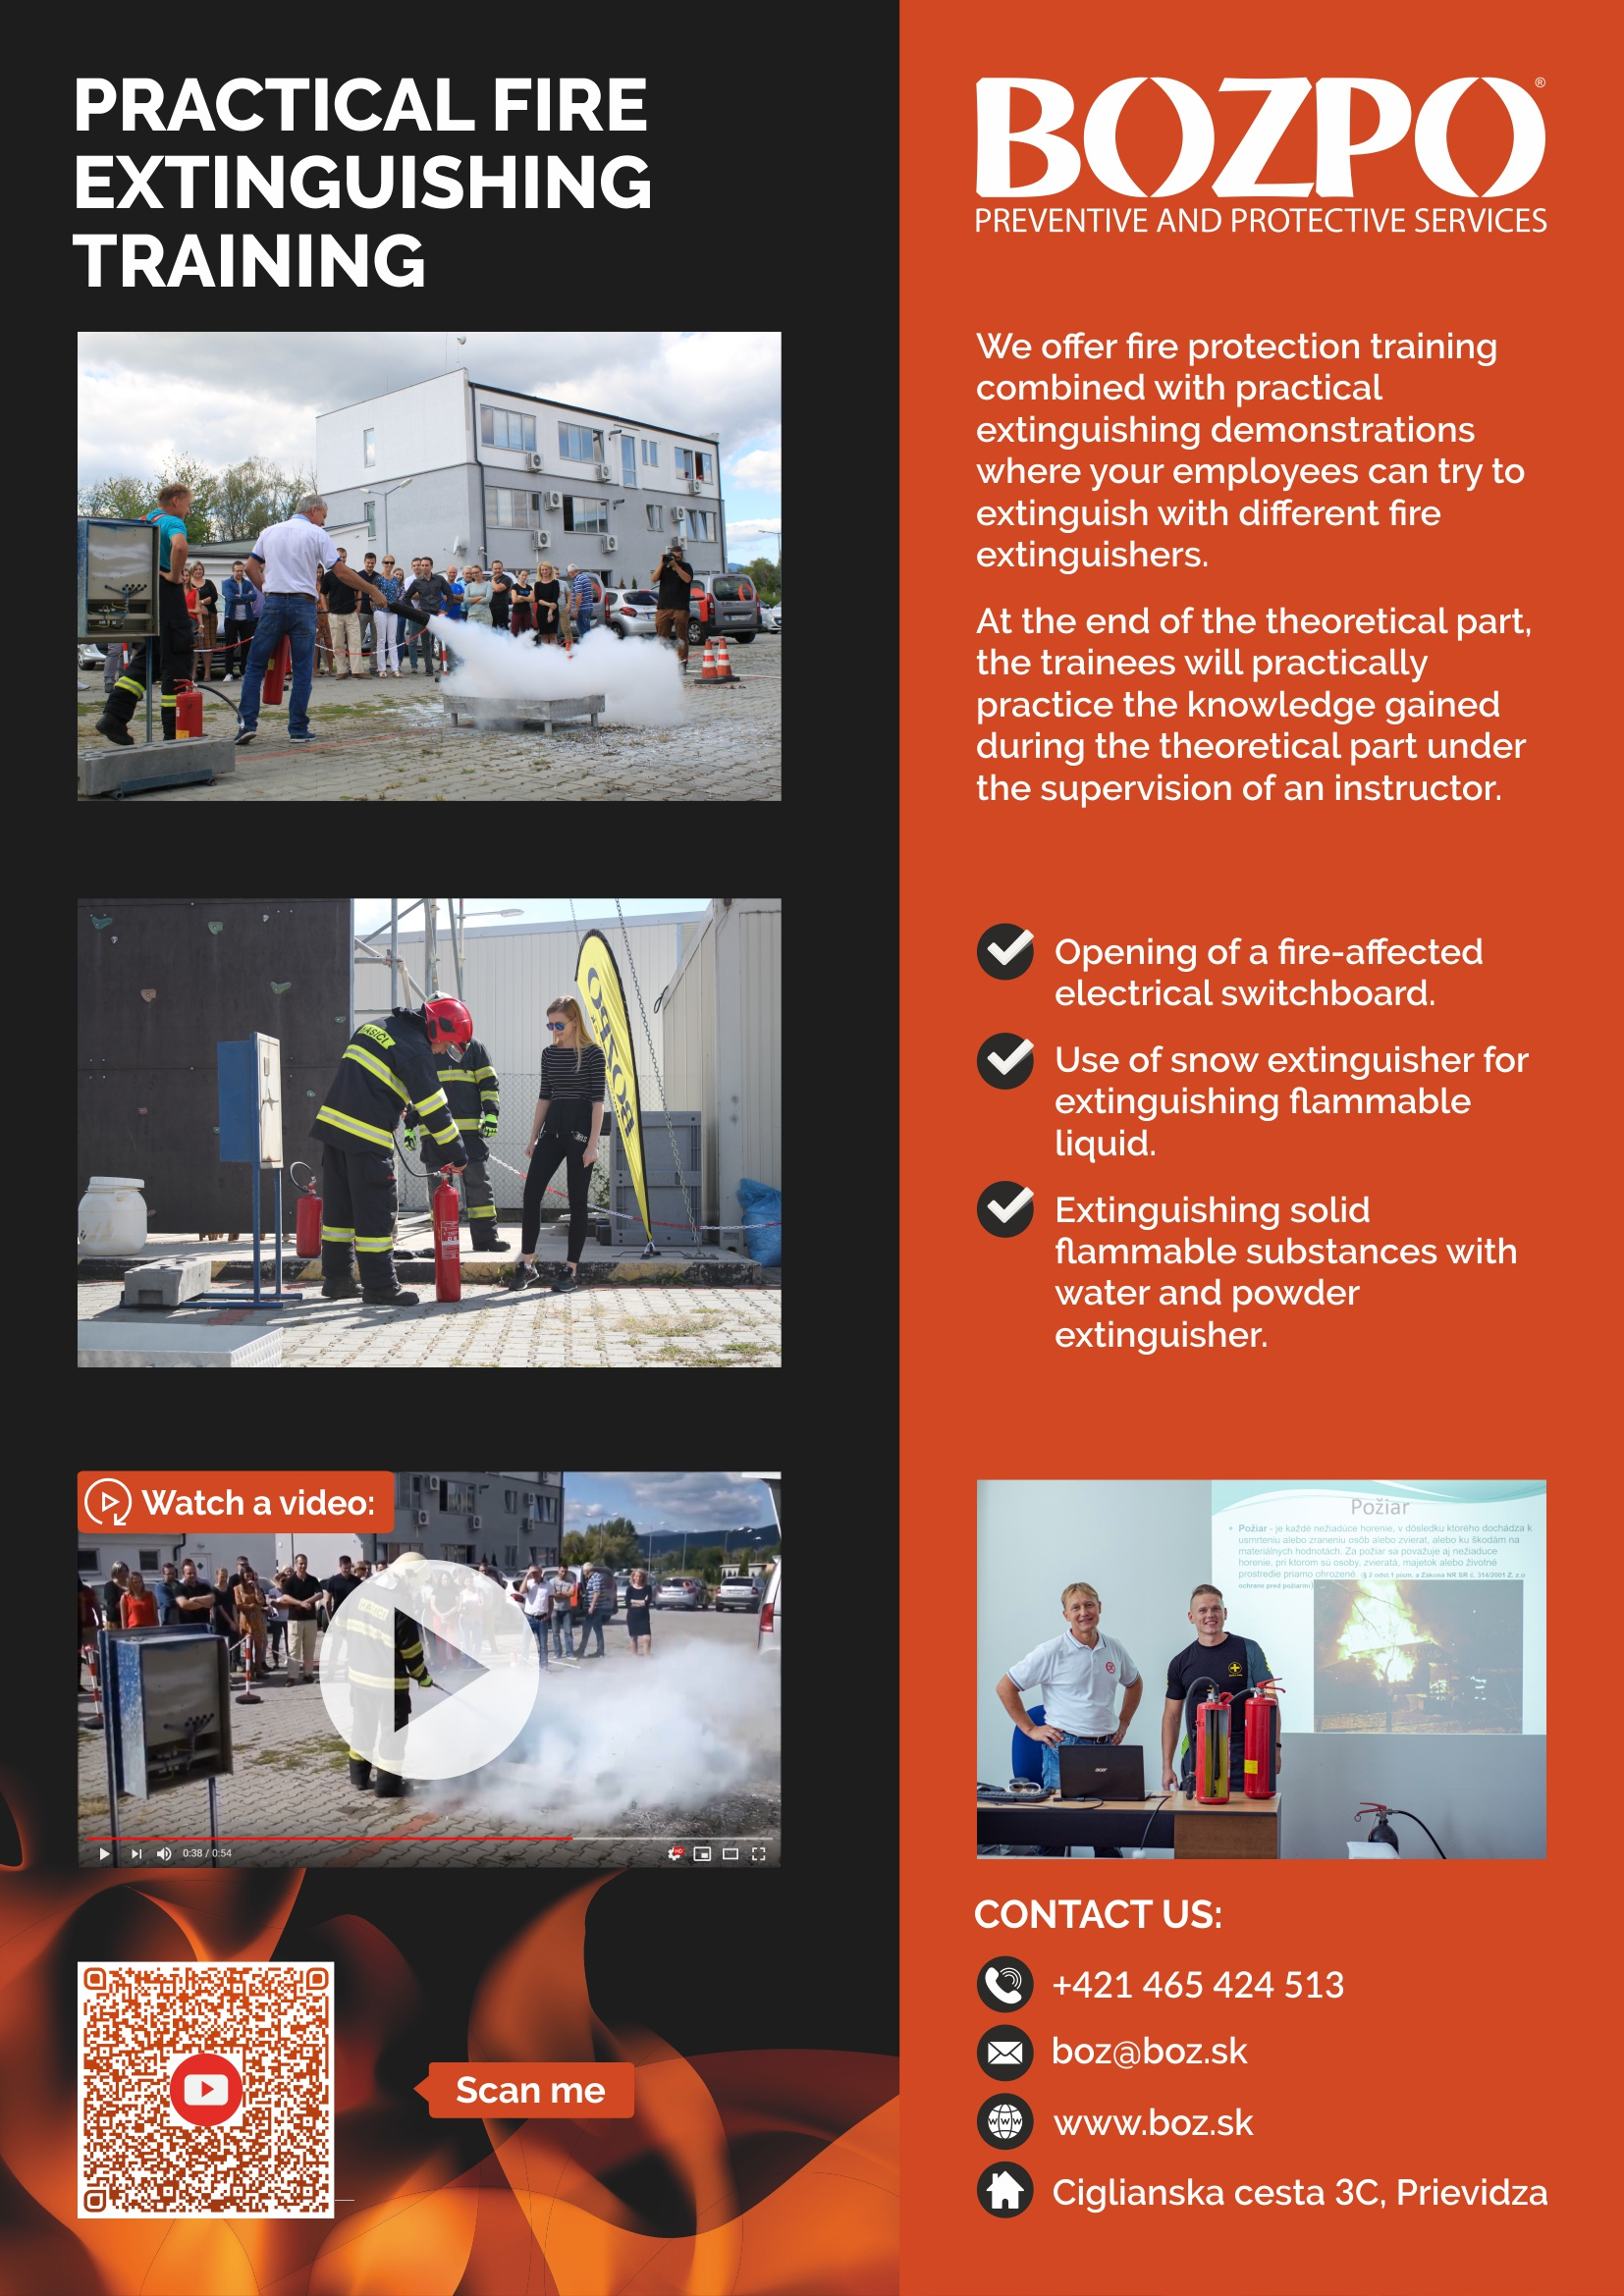 BOZPO-practical-fire-extinguishing-training